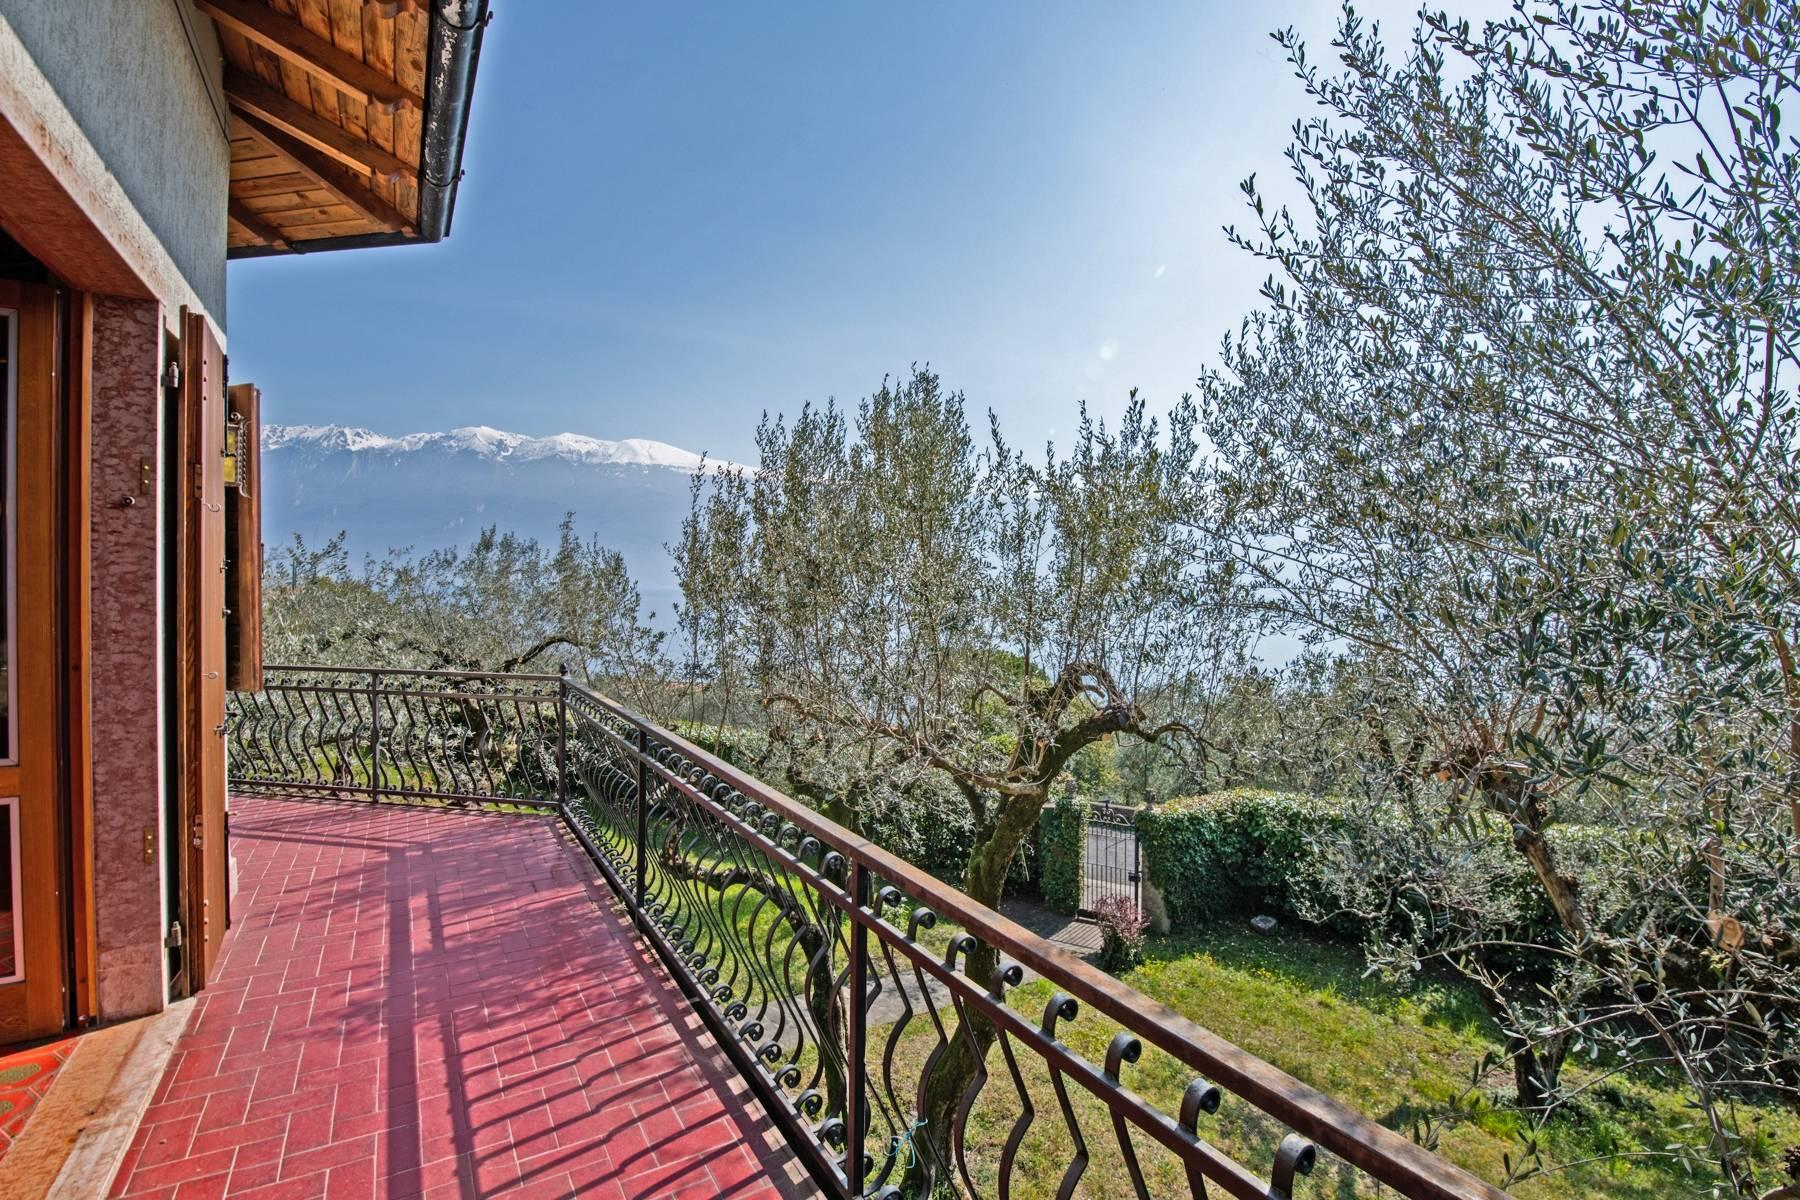 Villa with lake view in Gargnano surrounded by olive trees - 25